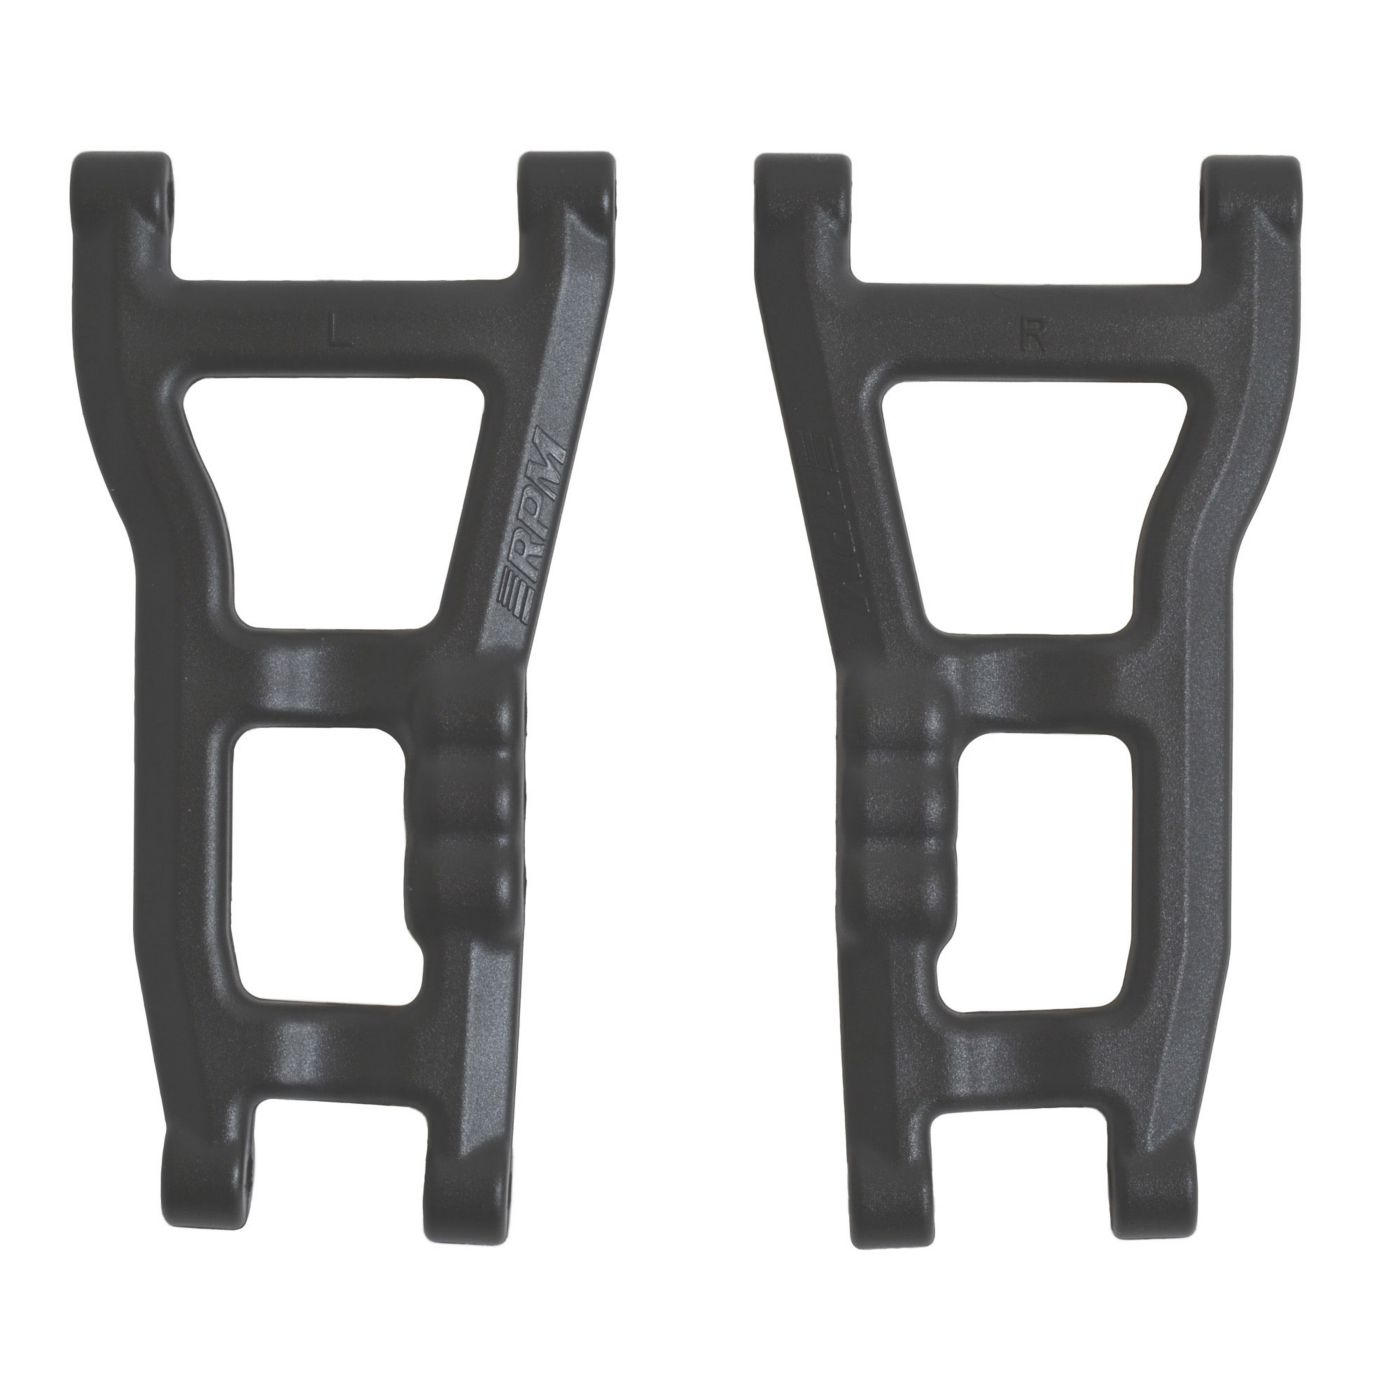 Rear A-Arms for the Traxxas Nitro Slash, Black (2)